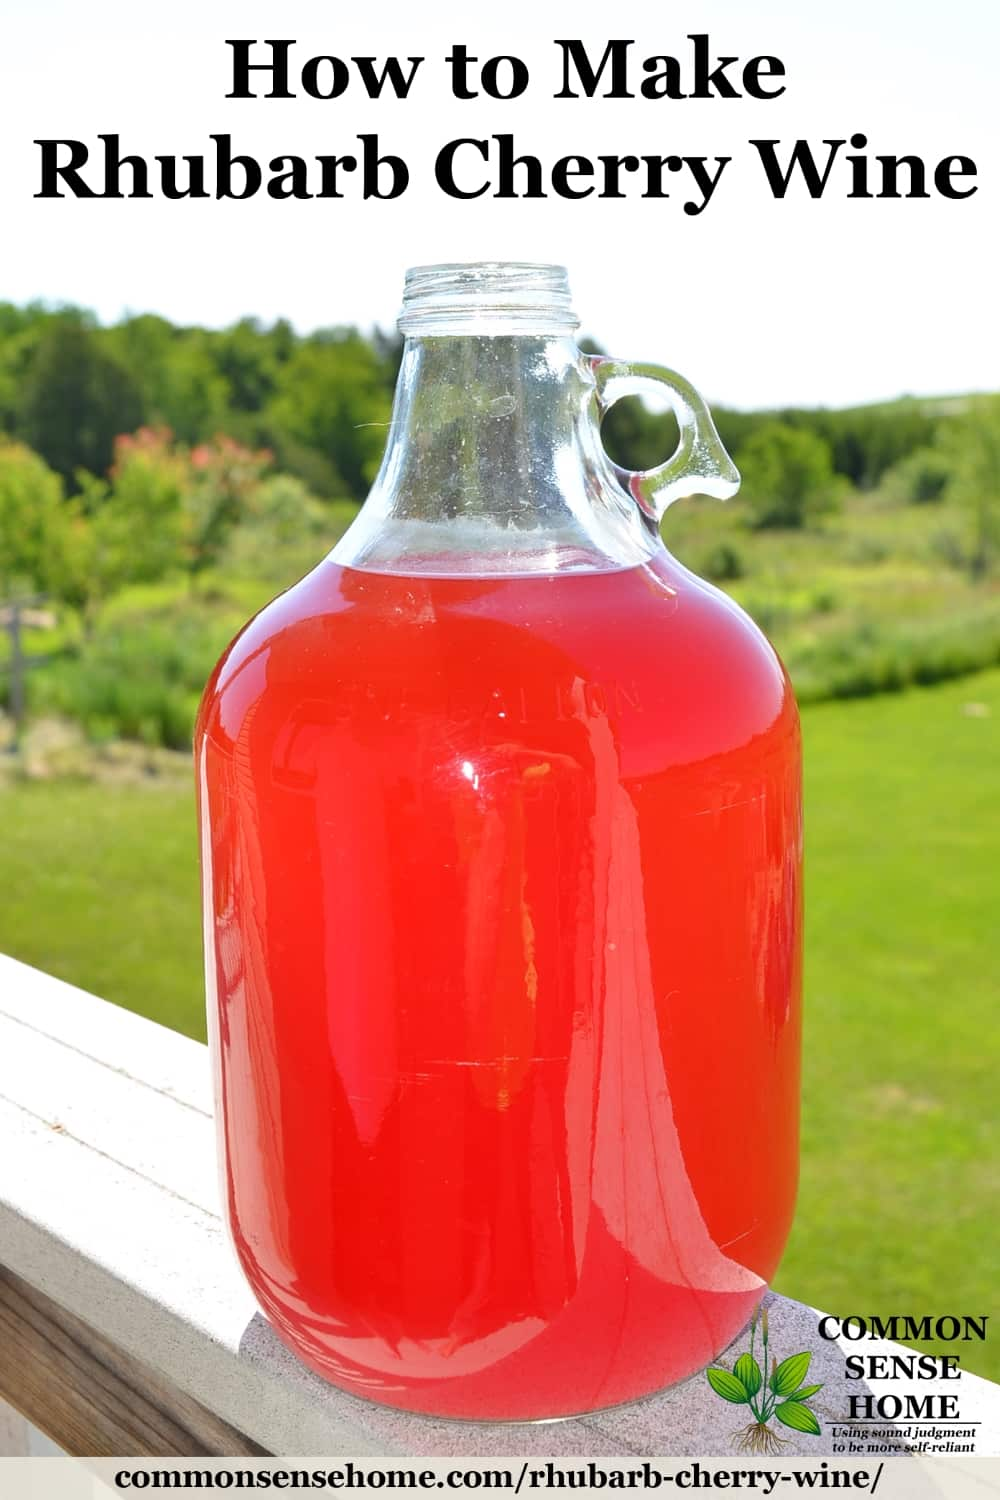 Gallon jug of bright pink homemade rhubarb cherry wine against a green background